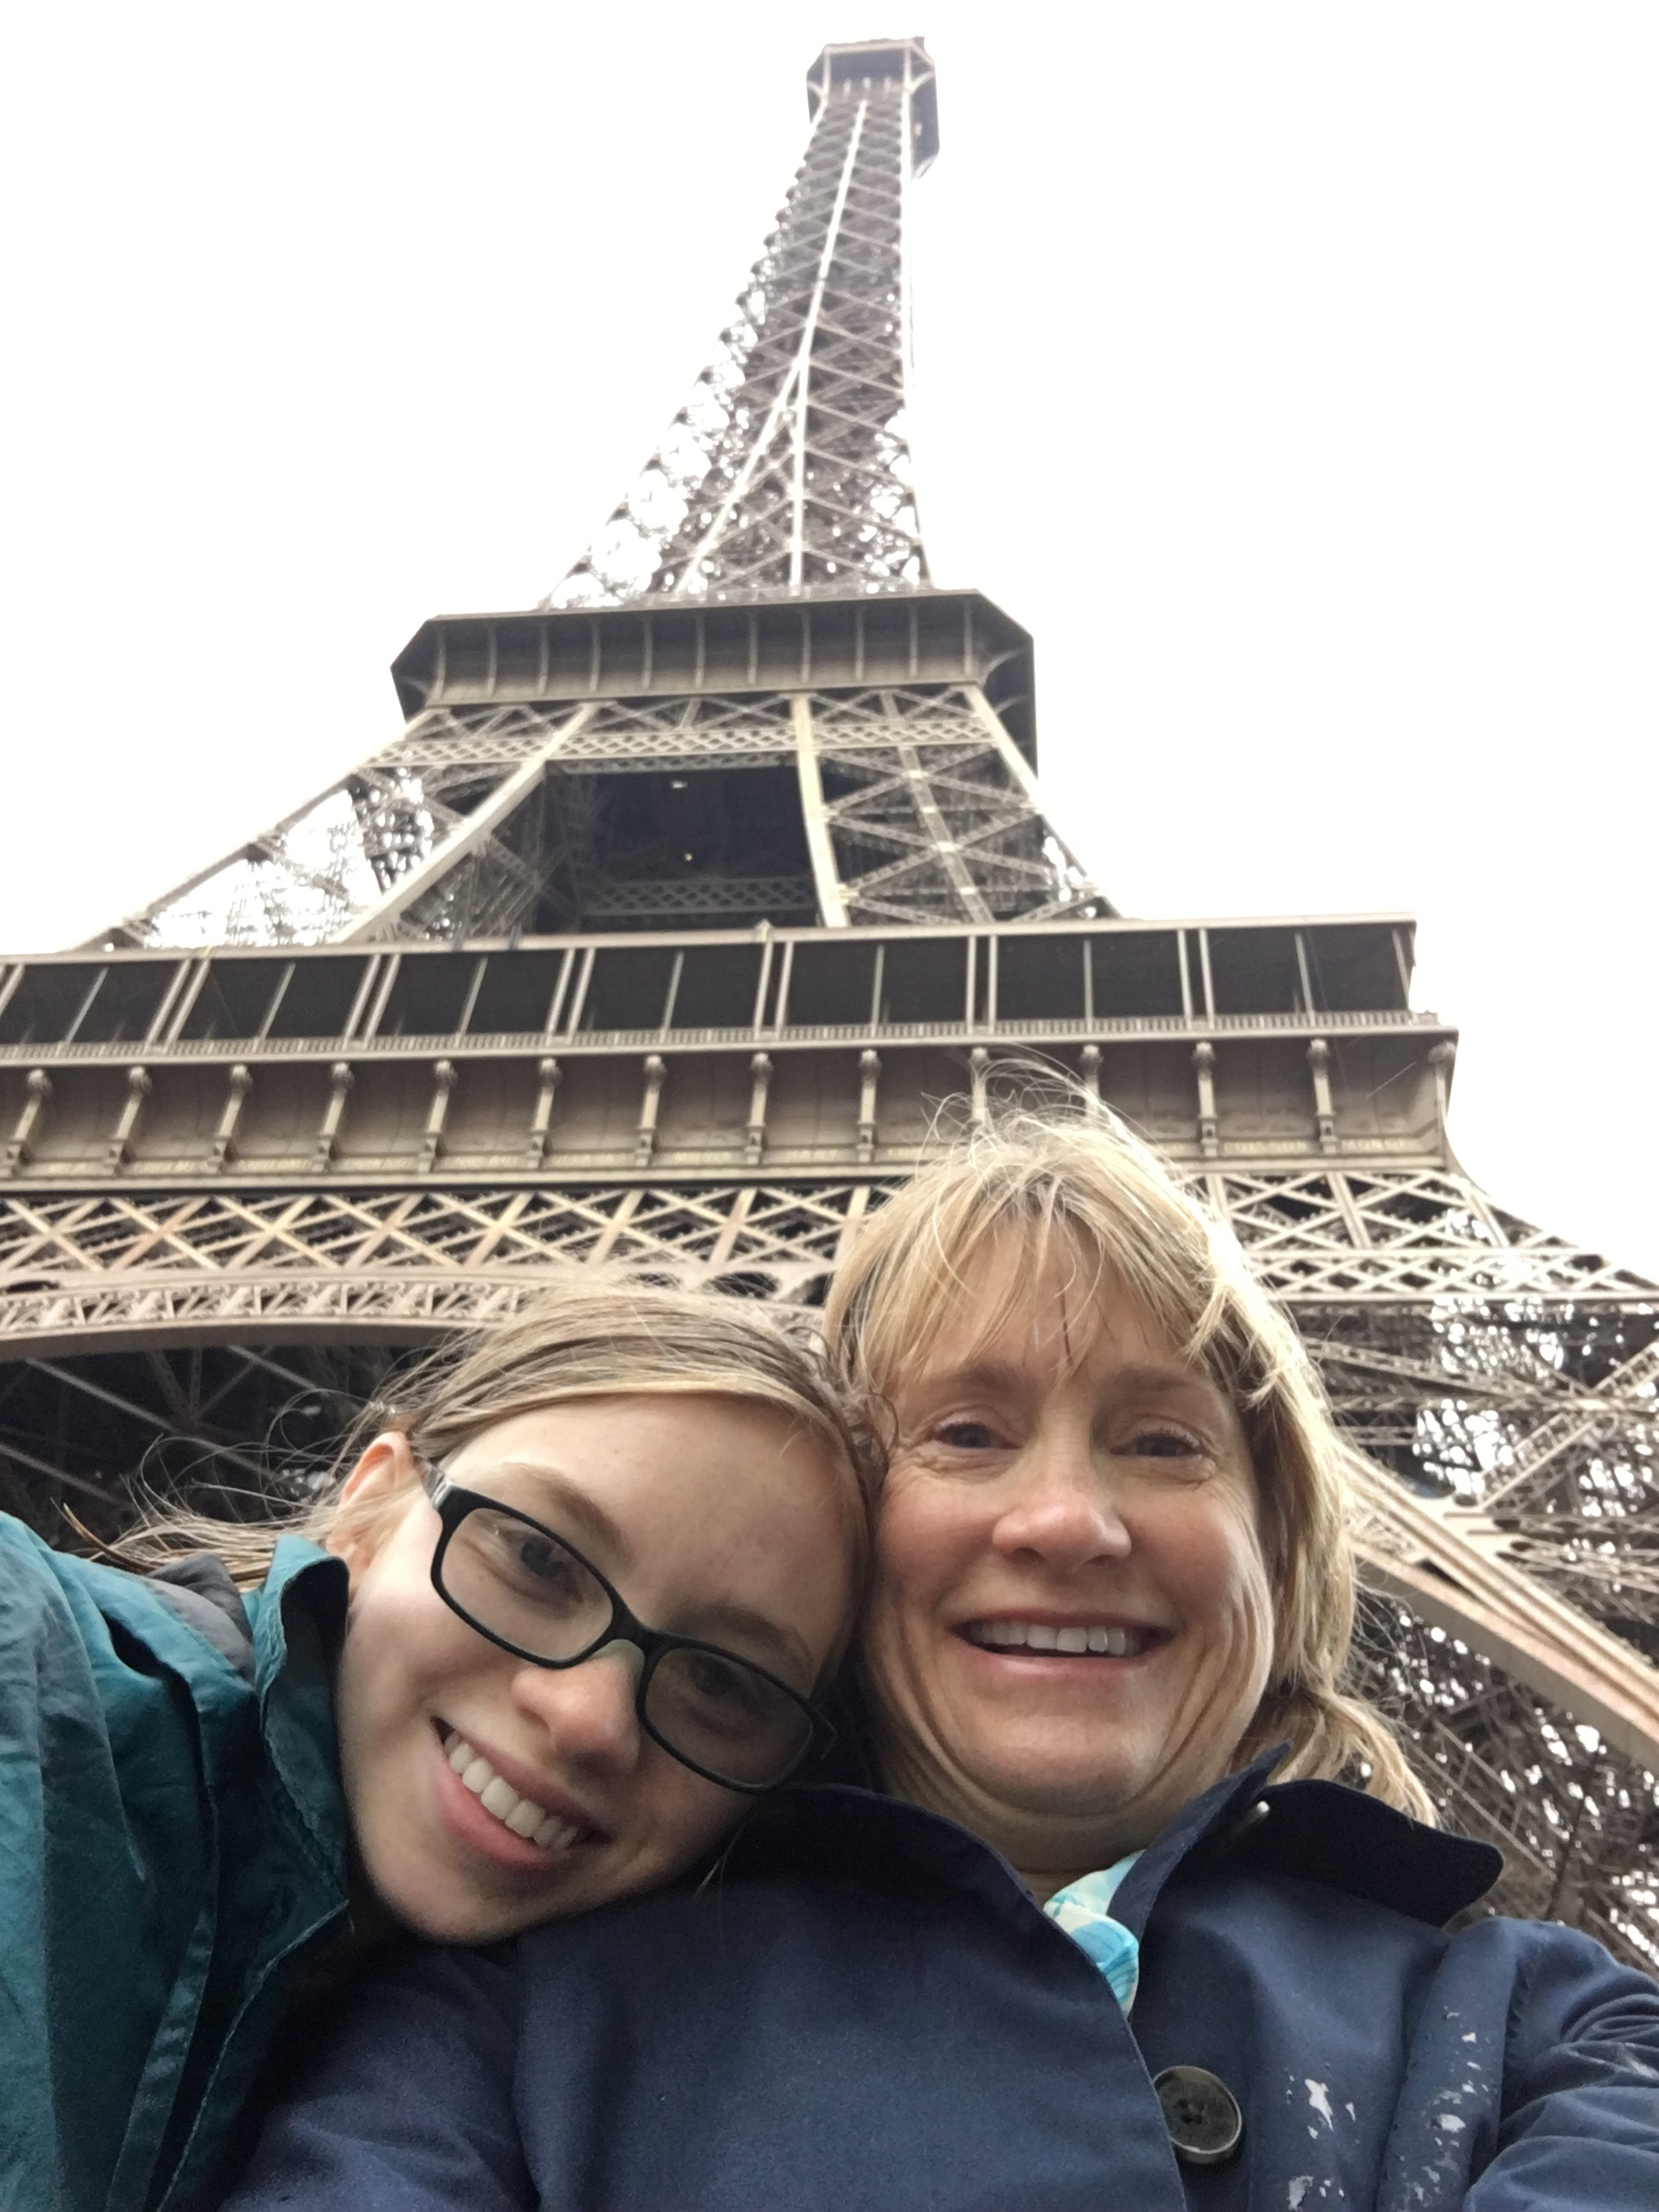 Early, rainy, and not quite high season! By following my tips for tourist destinations, we took an Eiffel selfie with no other photobombing tourists around!